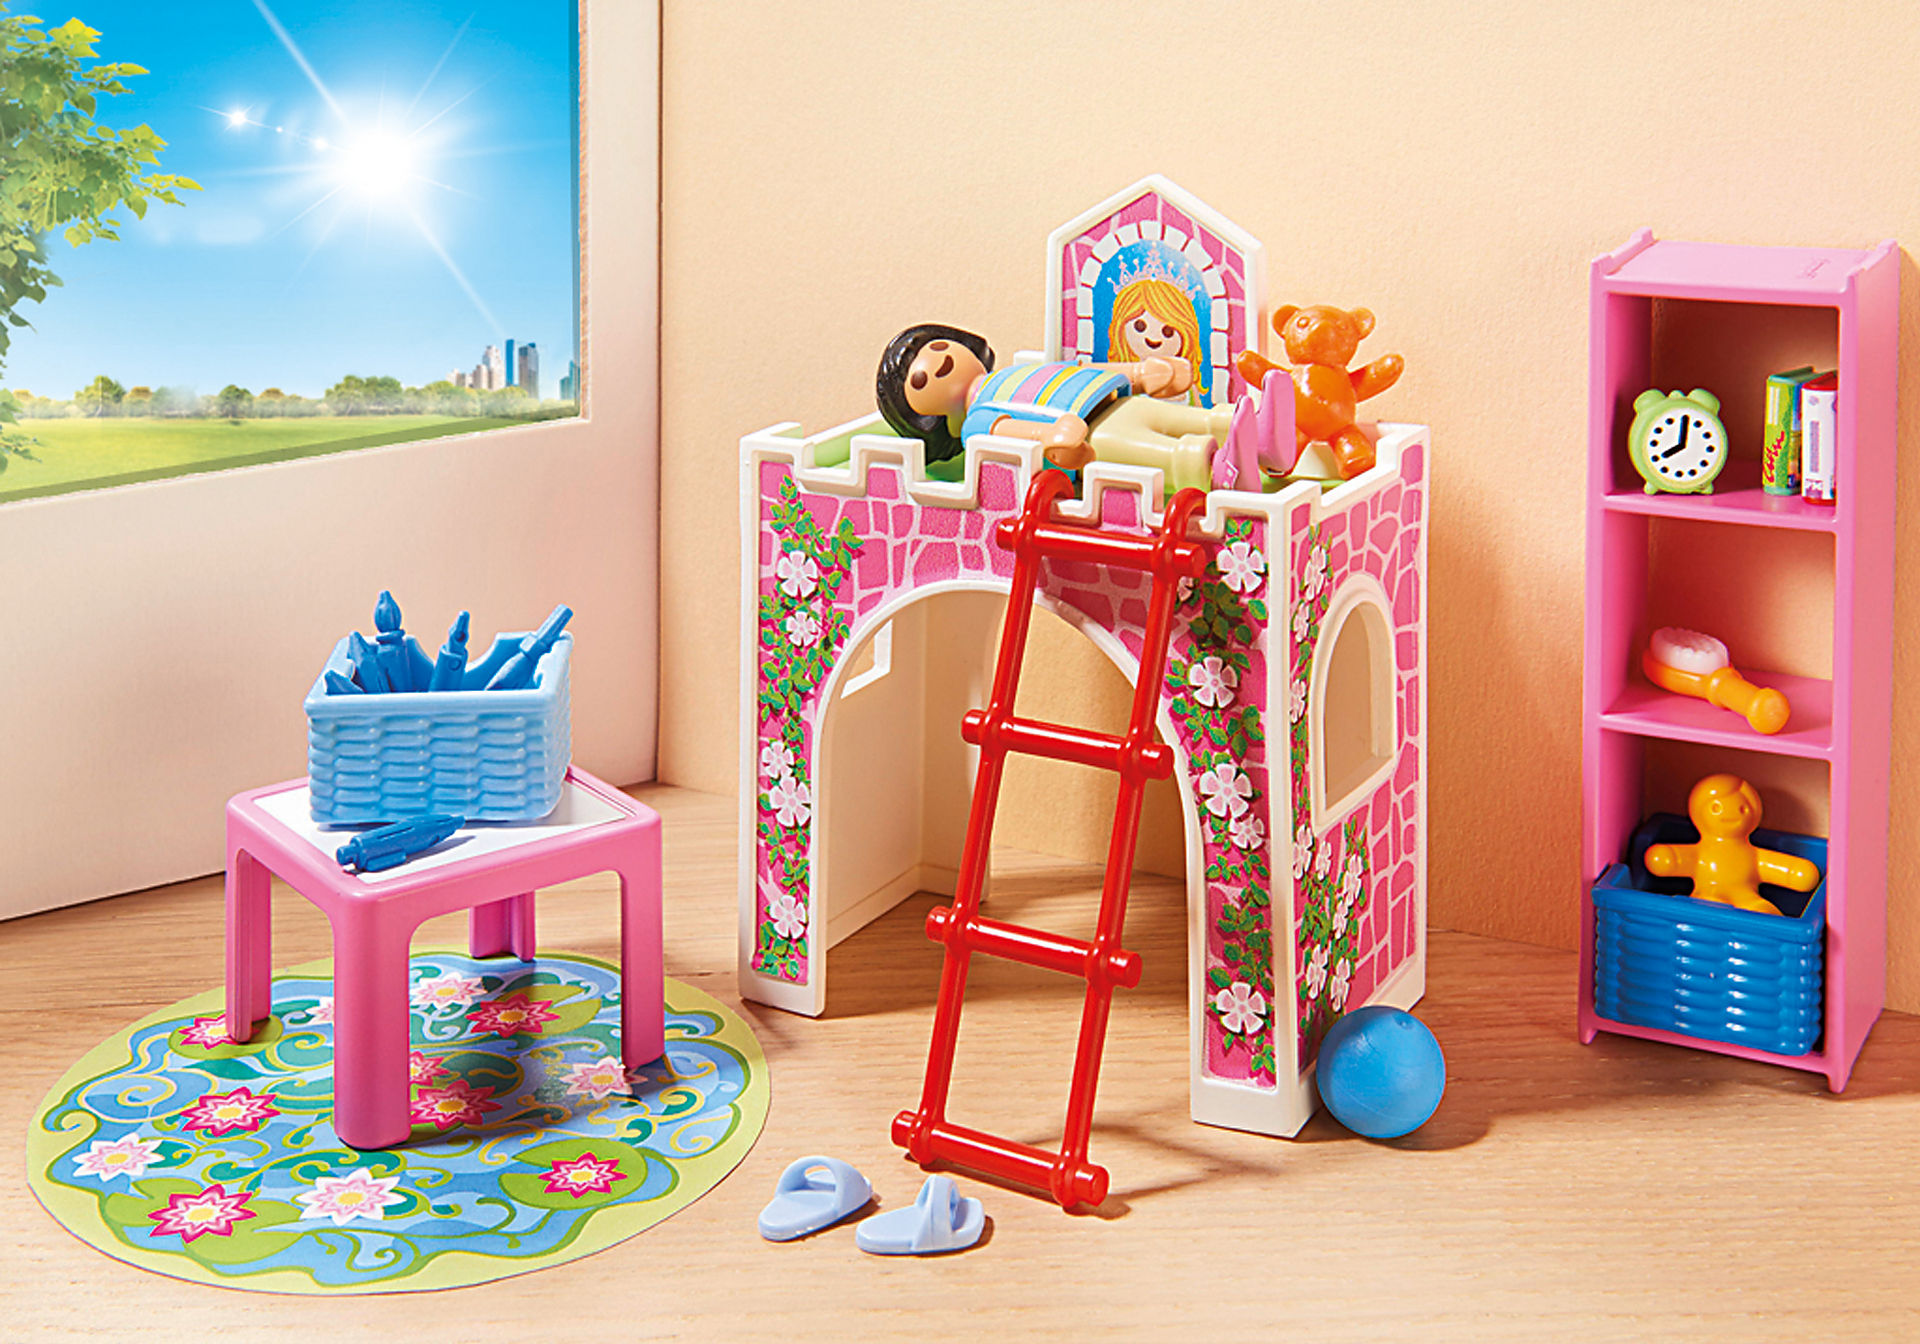 http://media.playmobil.com/i/playmobil/9270_product_extra1/Children's Room